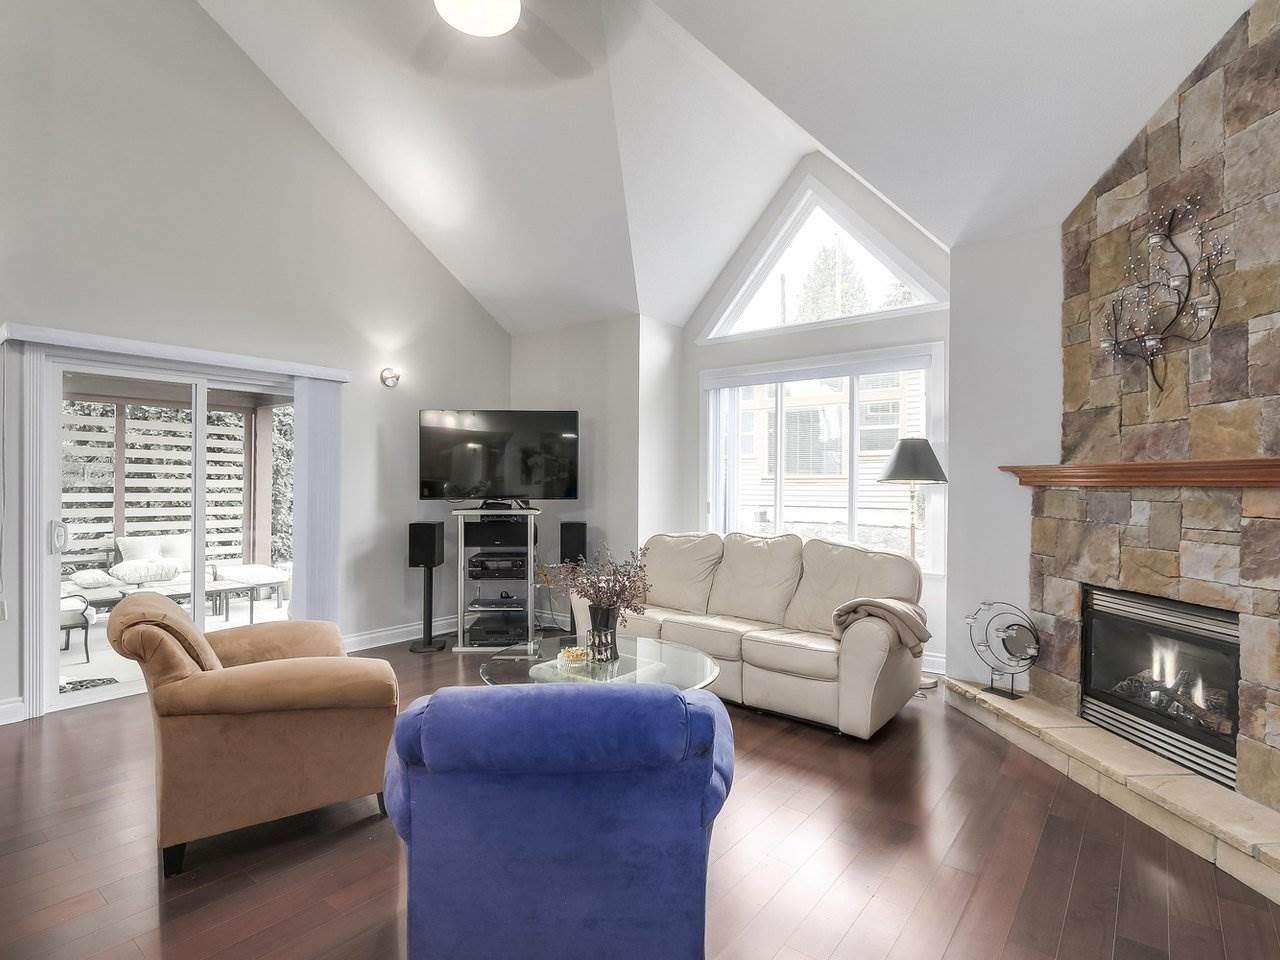 Photo 5: Photos: 658 E 4TH STREET in North Vancouver: Queensbury House for sale : MLS®# R2222993